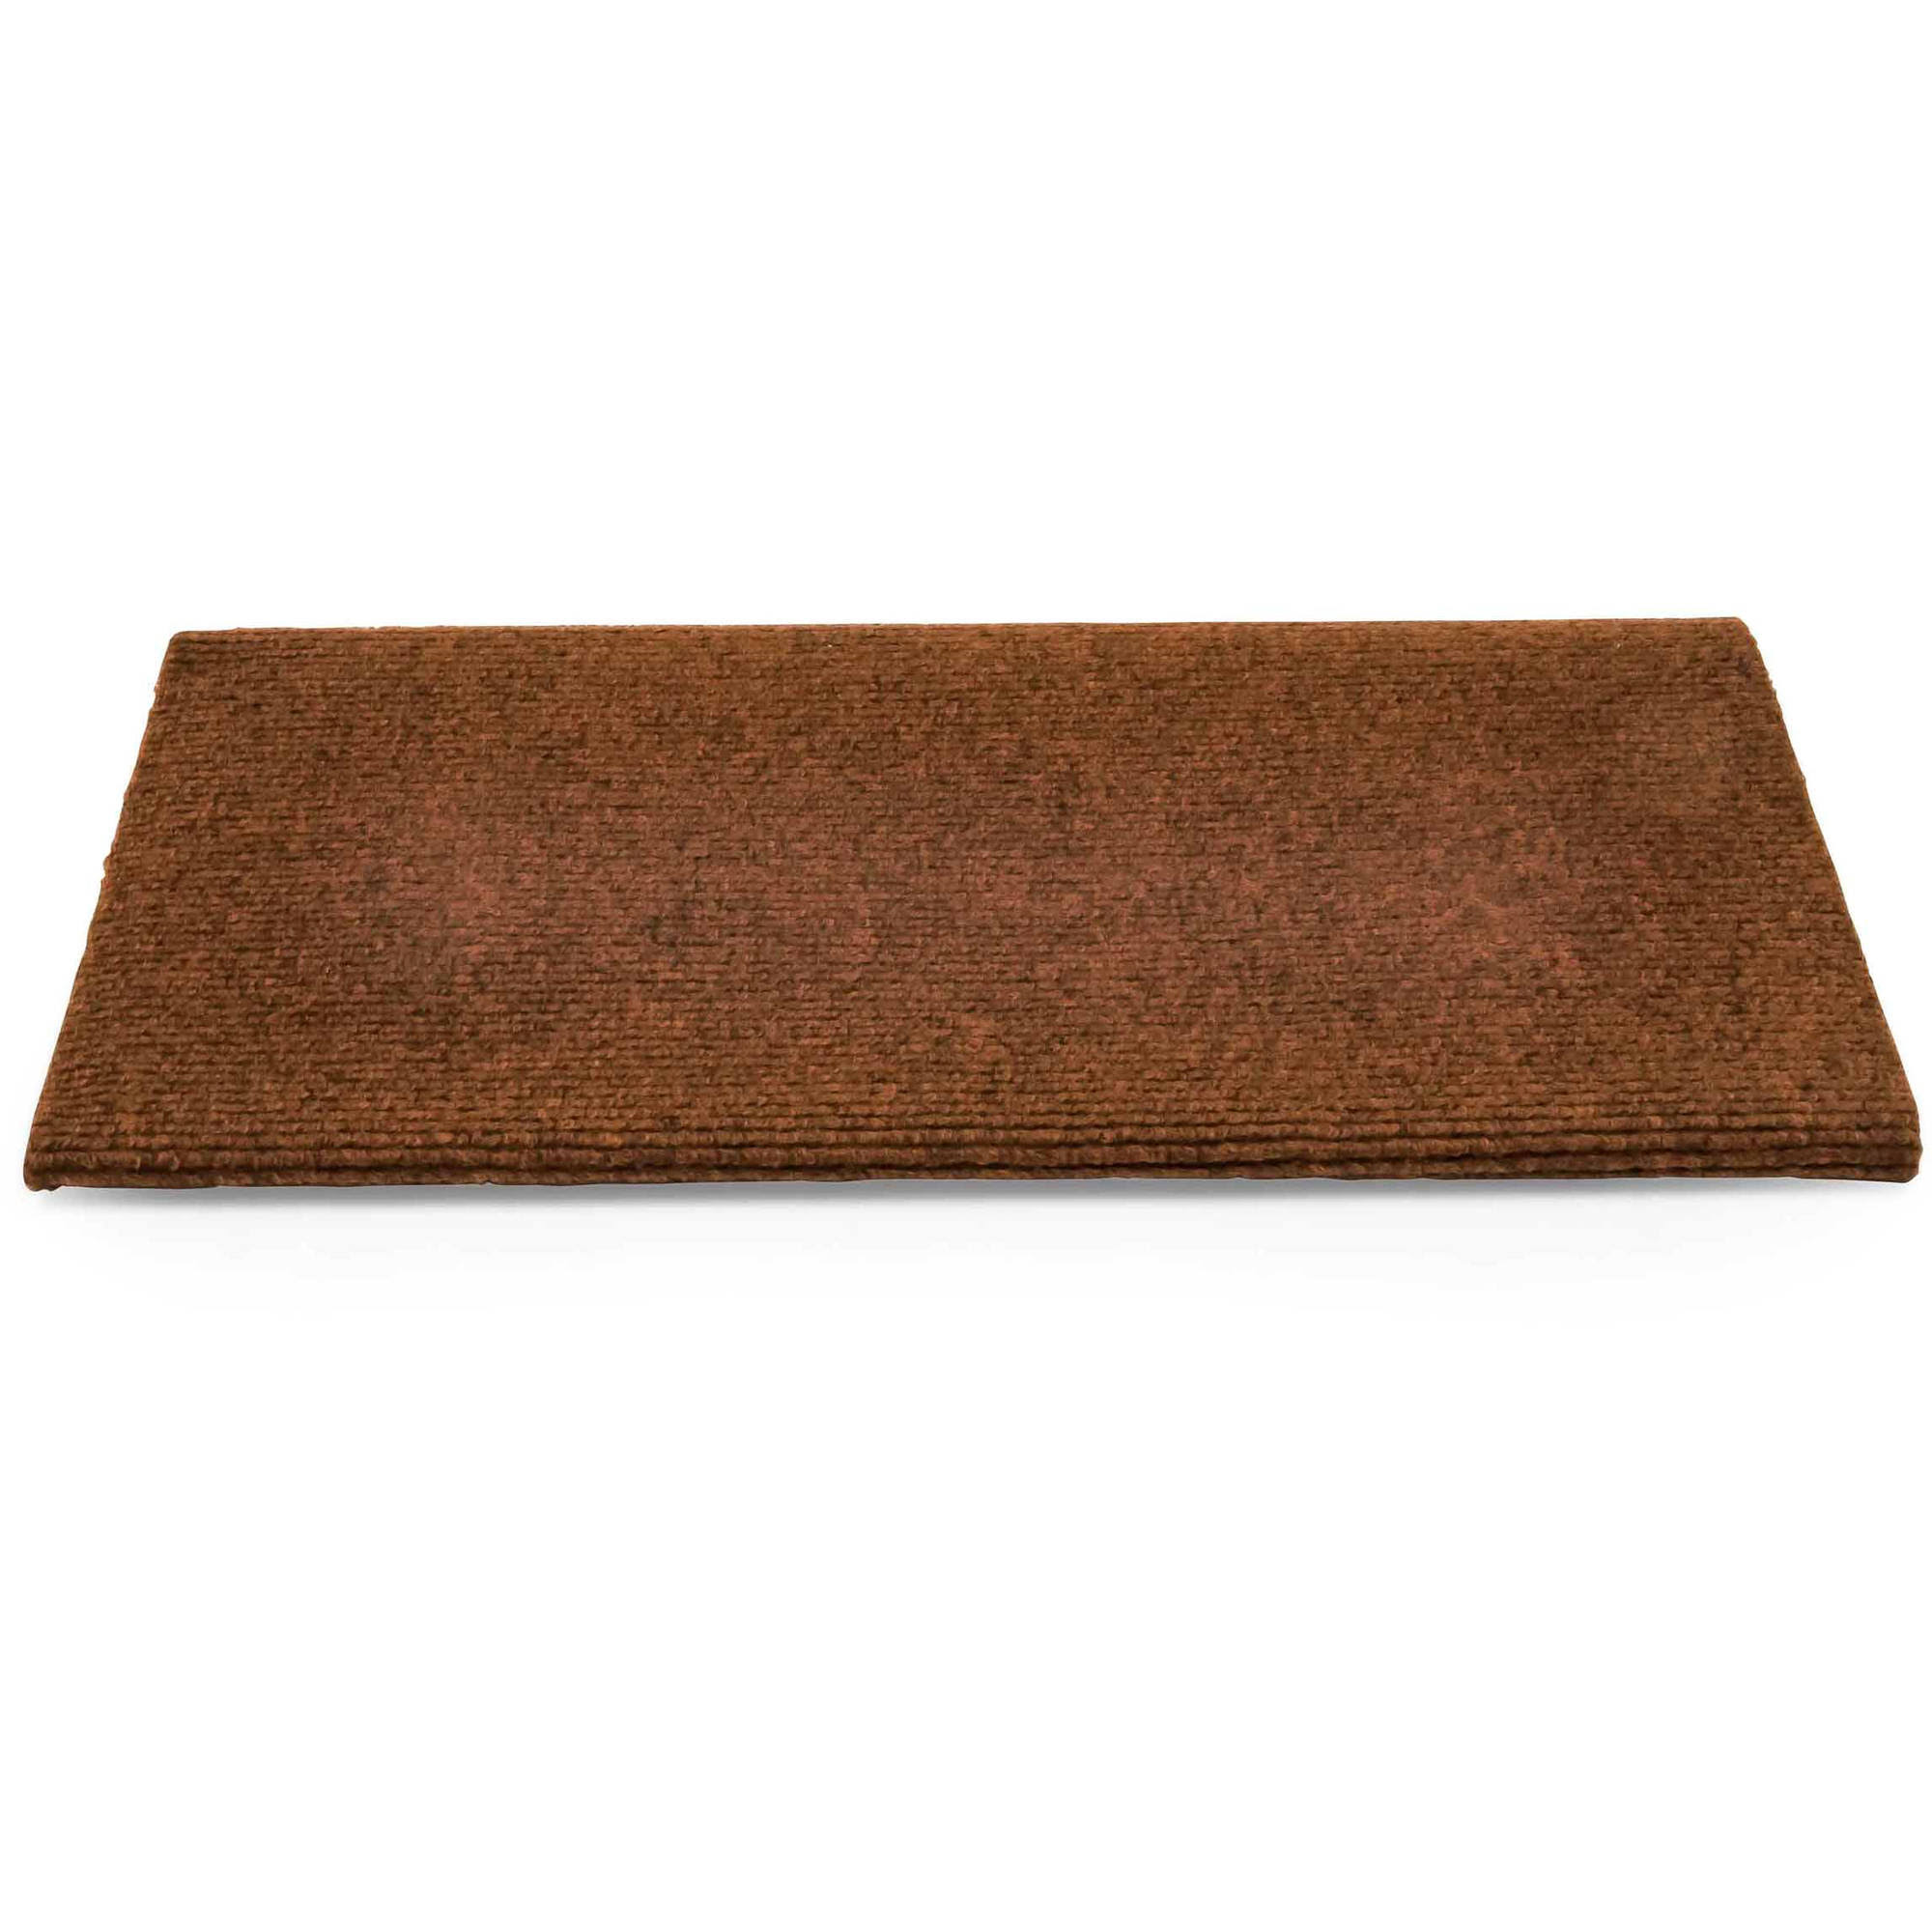 Camco 42906 Premium Wrap Around RV Step Rug, Single Rib Design, 100 Percent Polyester (17.5 inch x 18 inch), Brown